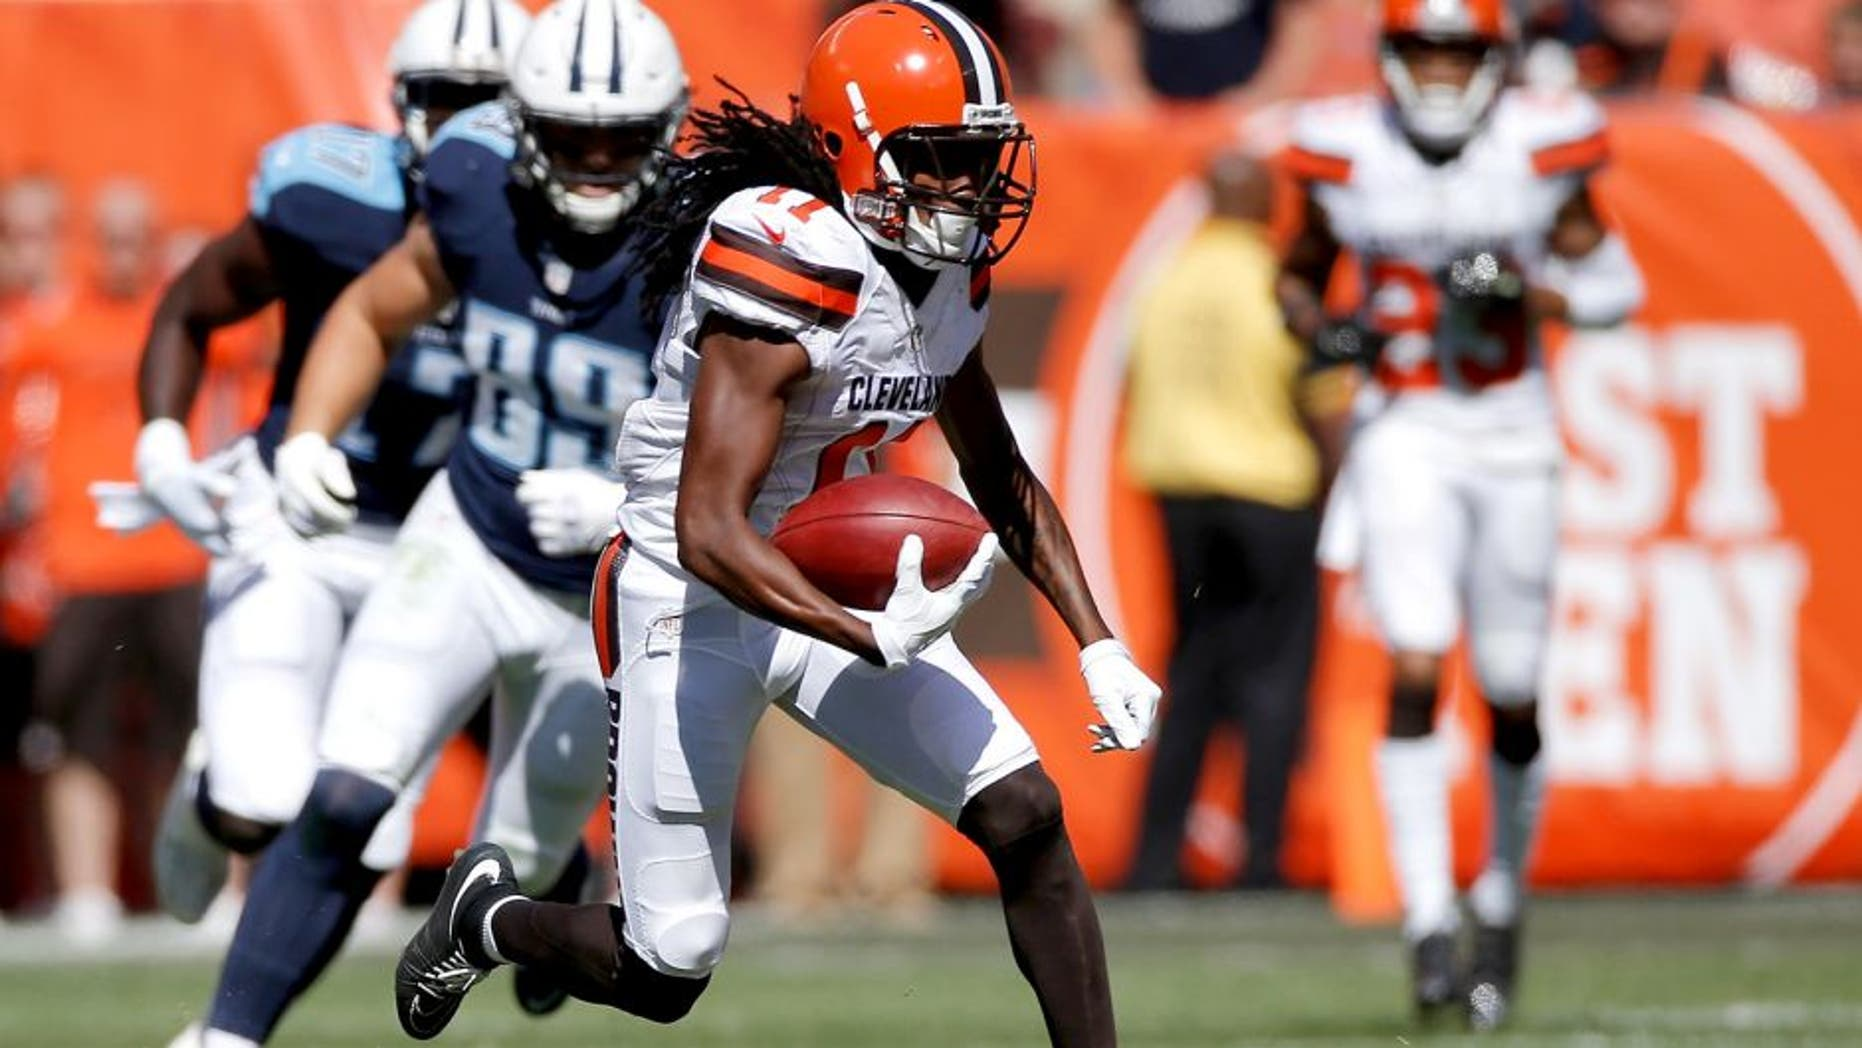 CLEVELAND, OH - SEPTEMBER 20: Travis Benjamin #11 of the Cleveland Browns returns a second quarter punt for a touchdown while playing the Tennessee Titans at FirstEnergy Stadium on September 20, 2015 in Cleveland, Ohio. (Photo by Gregory Shamus/Getty Images)